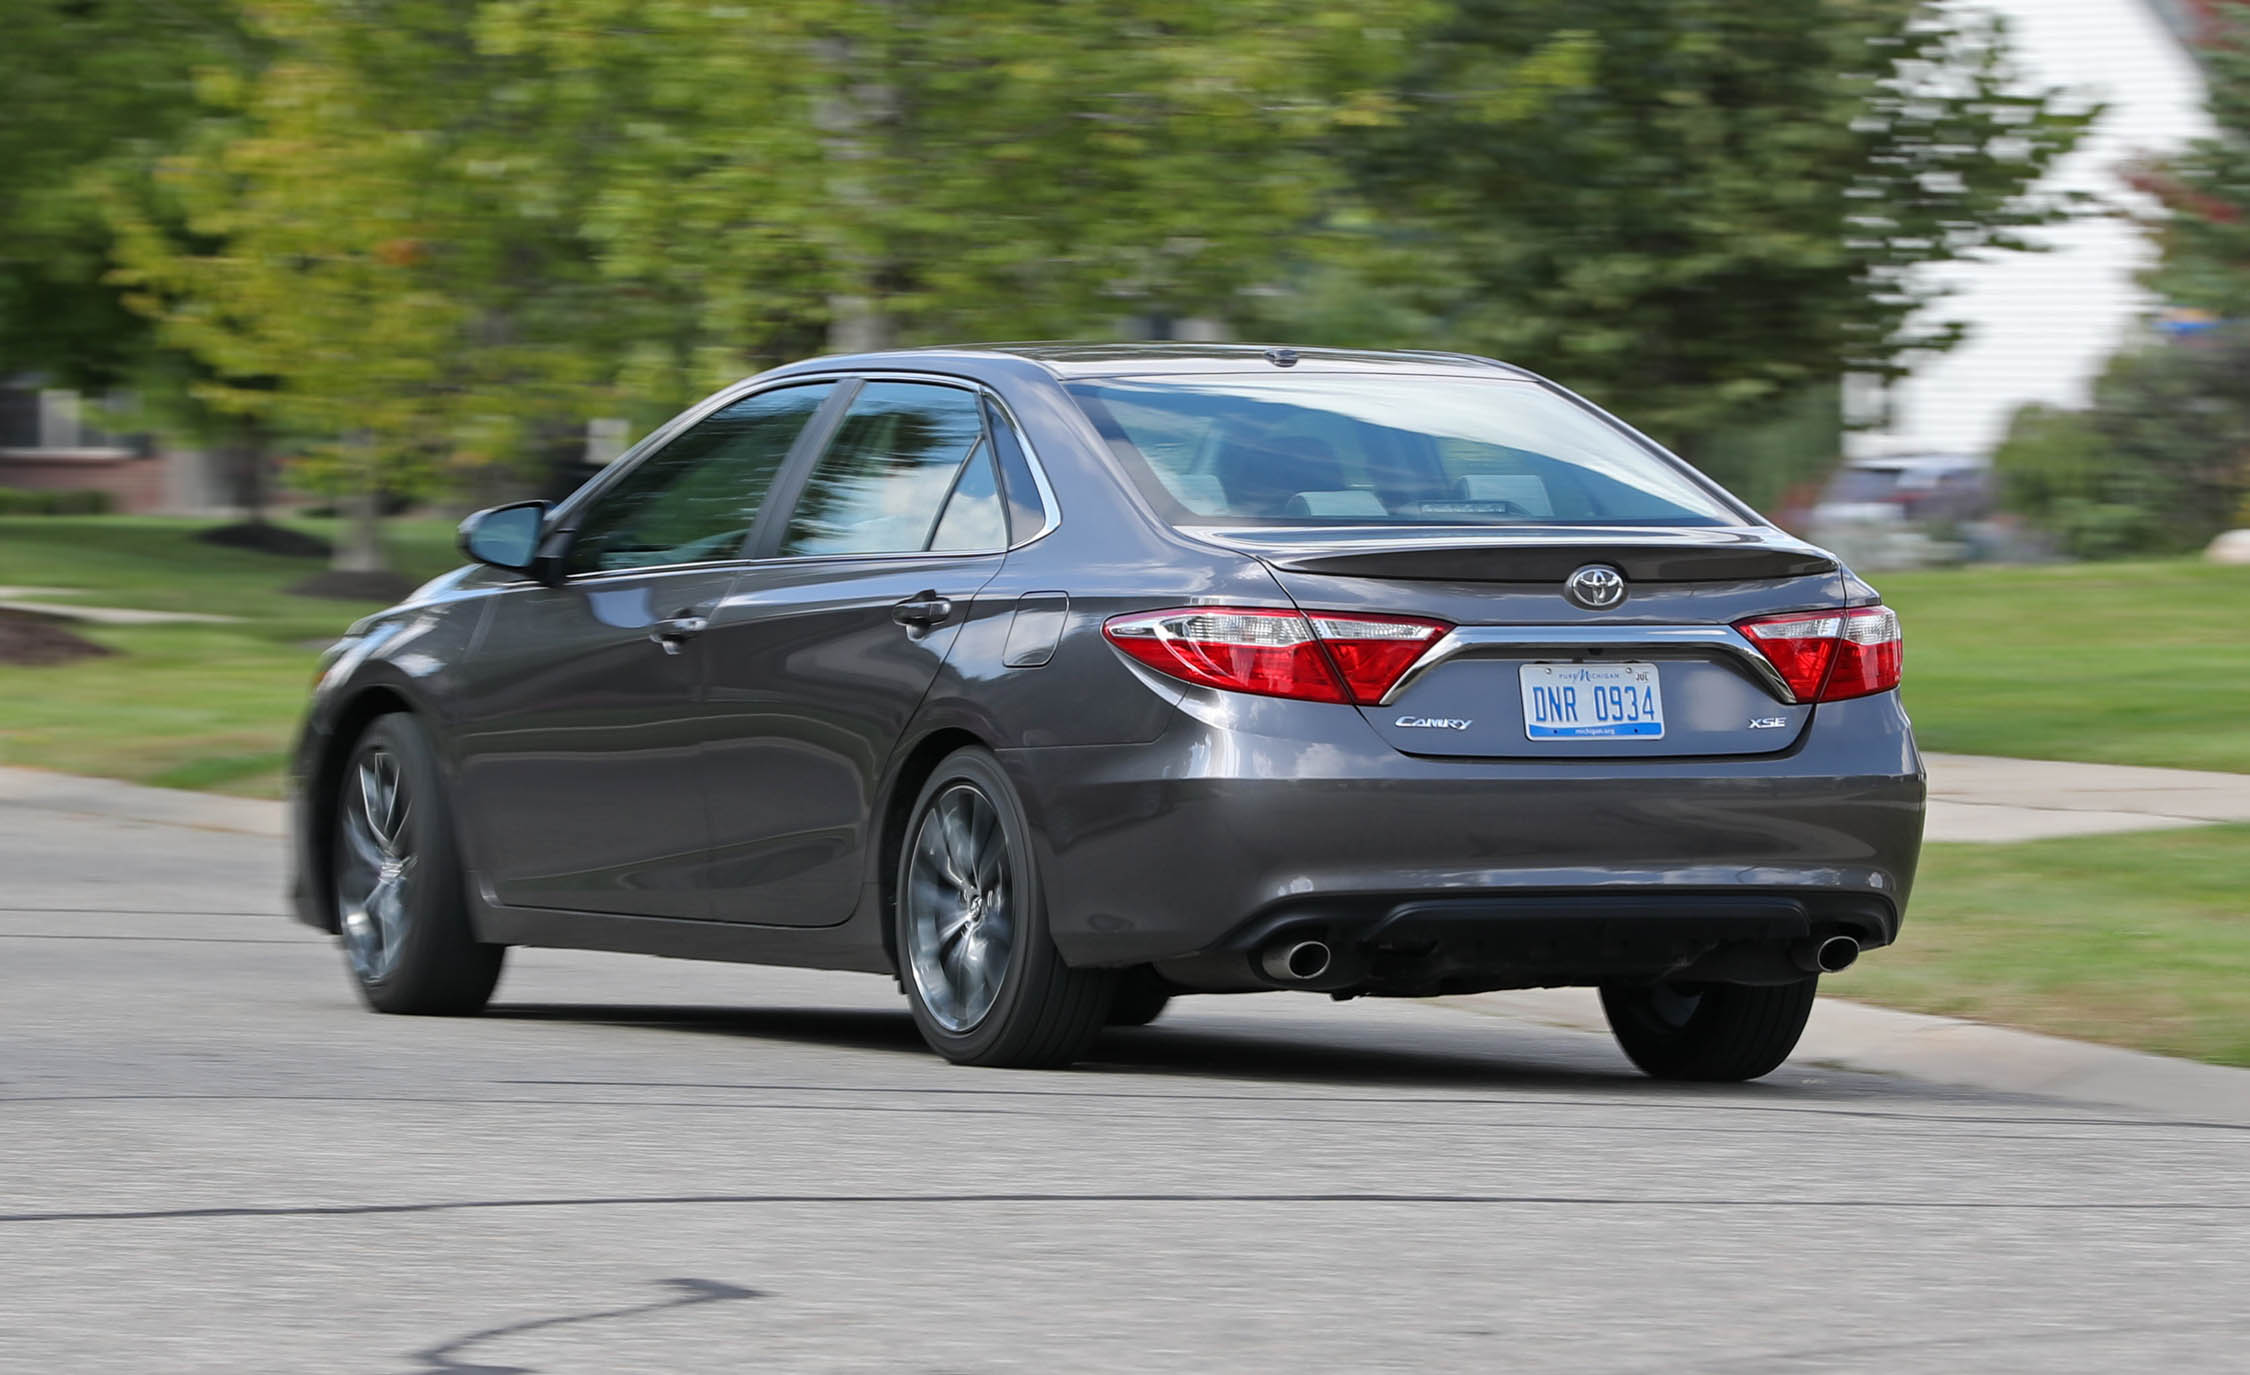 2017 Toyota Camry Test Drive Rear And Side Preview (Photo 31 of 37)